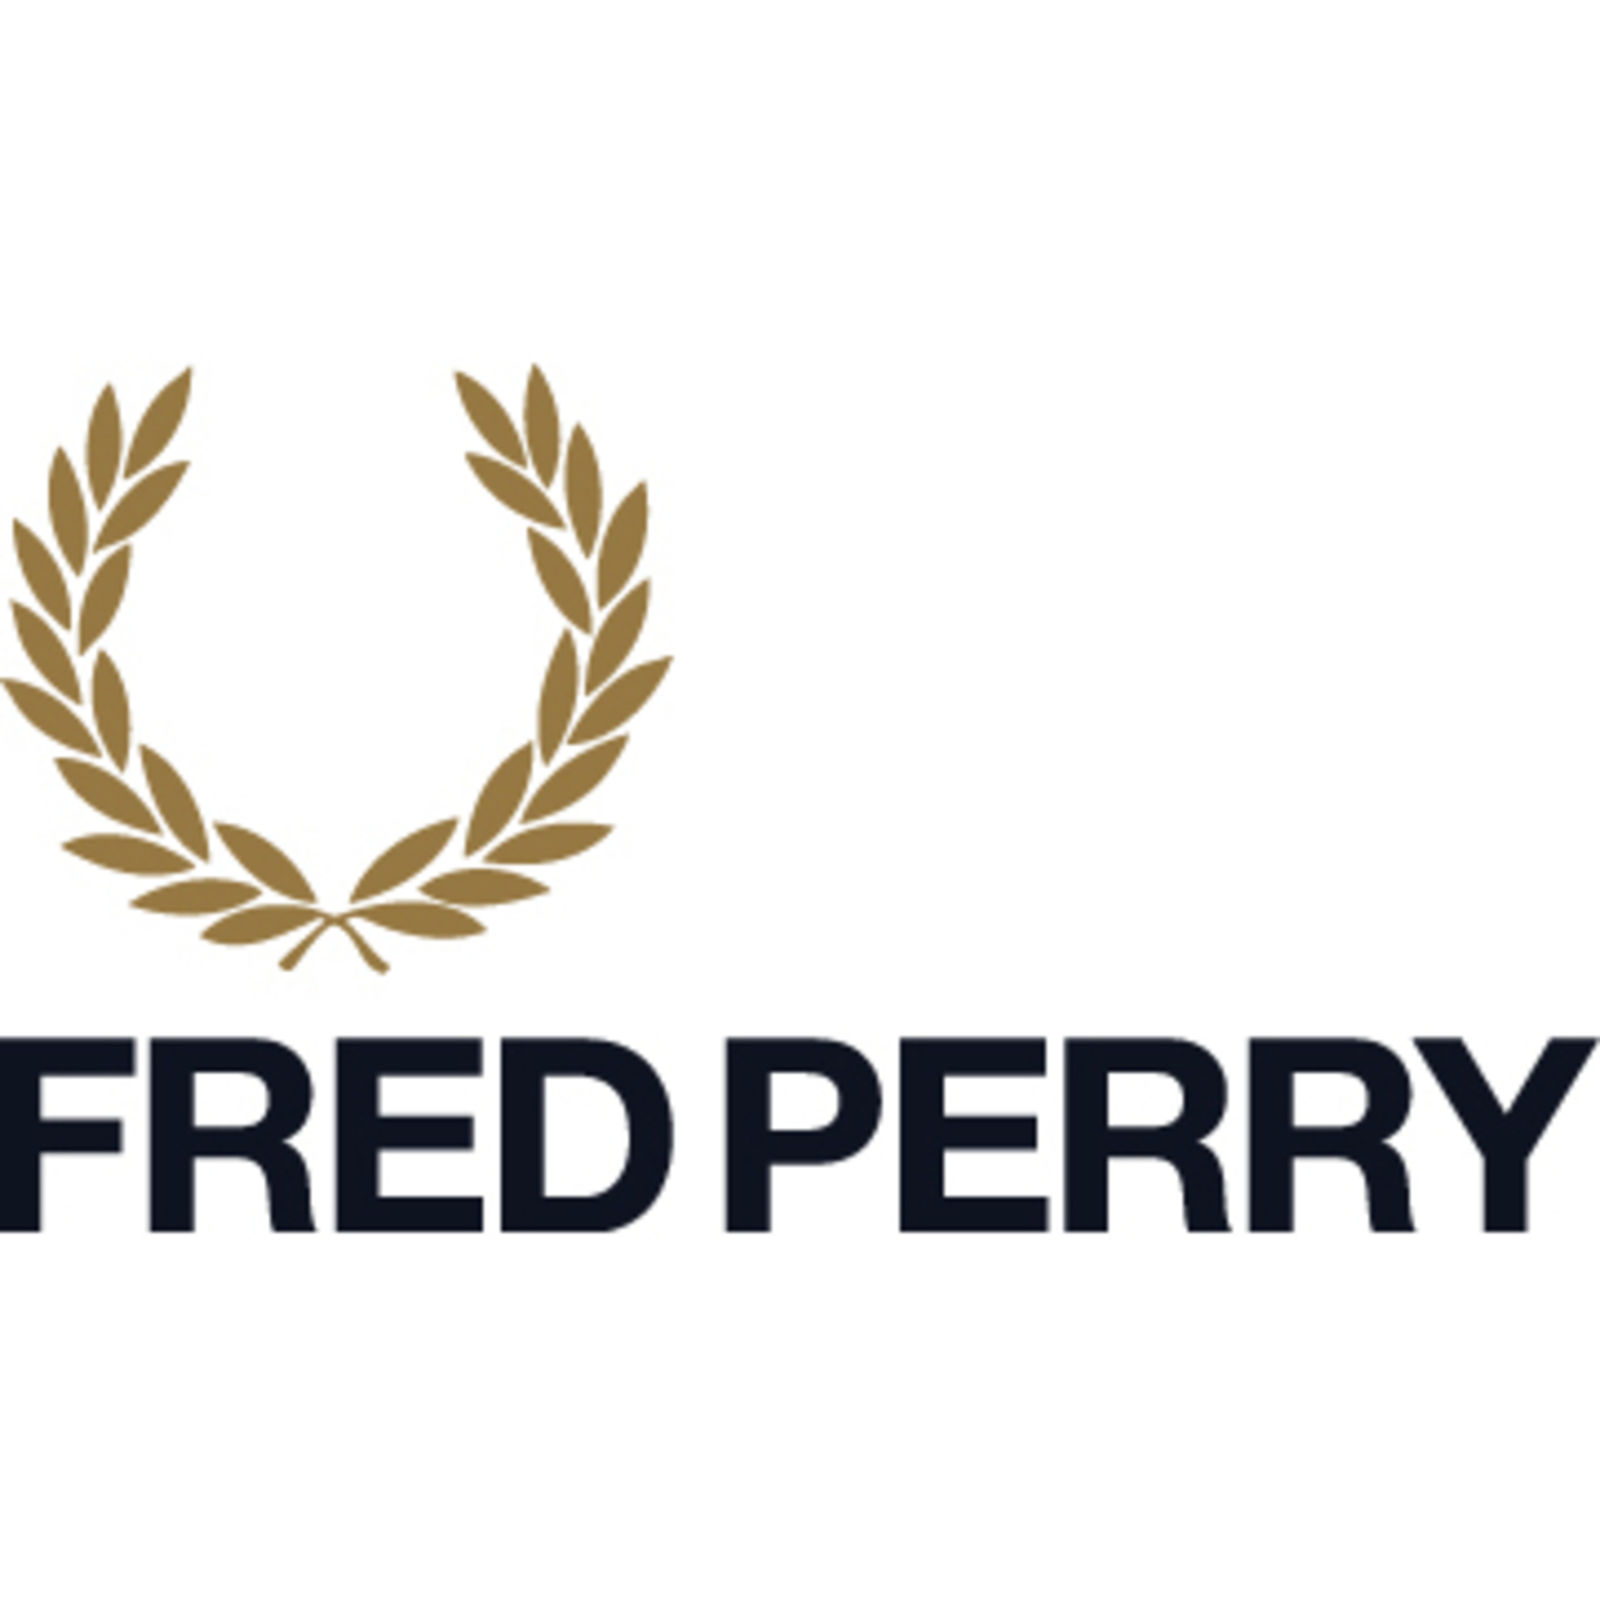 FRED PERRY Authentic | BRADLEY WIGGINS (Изображение 1)